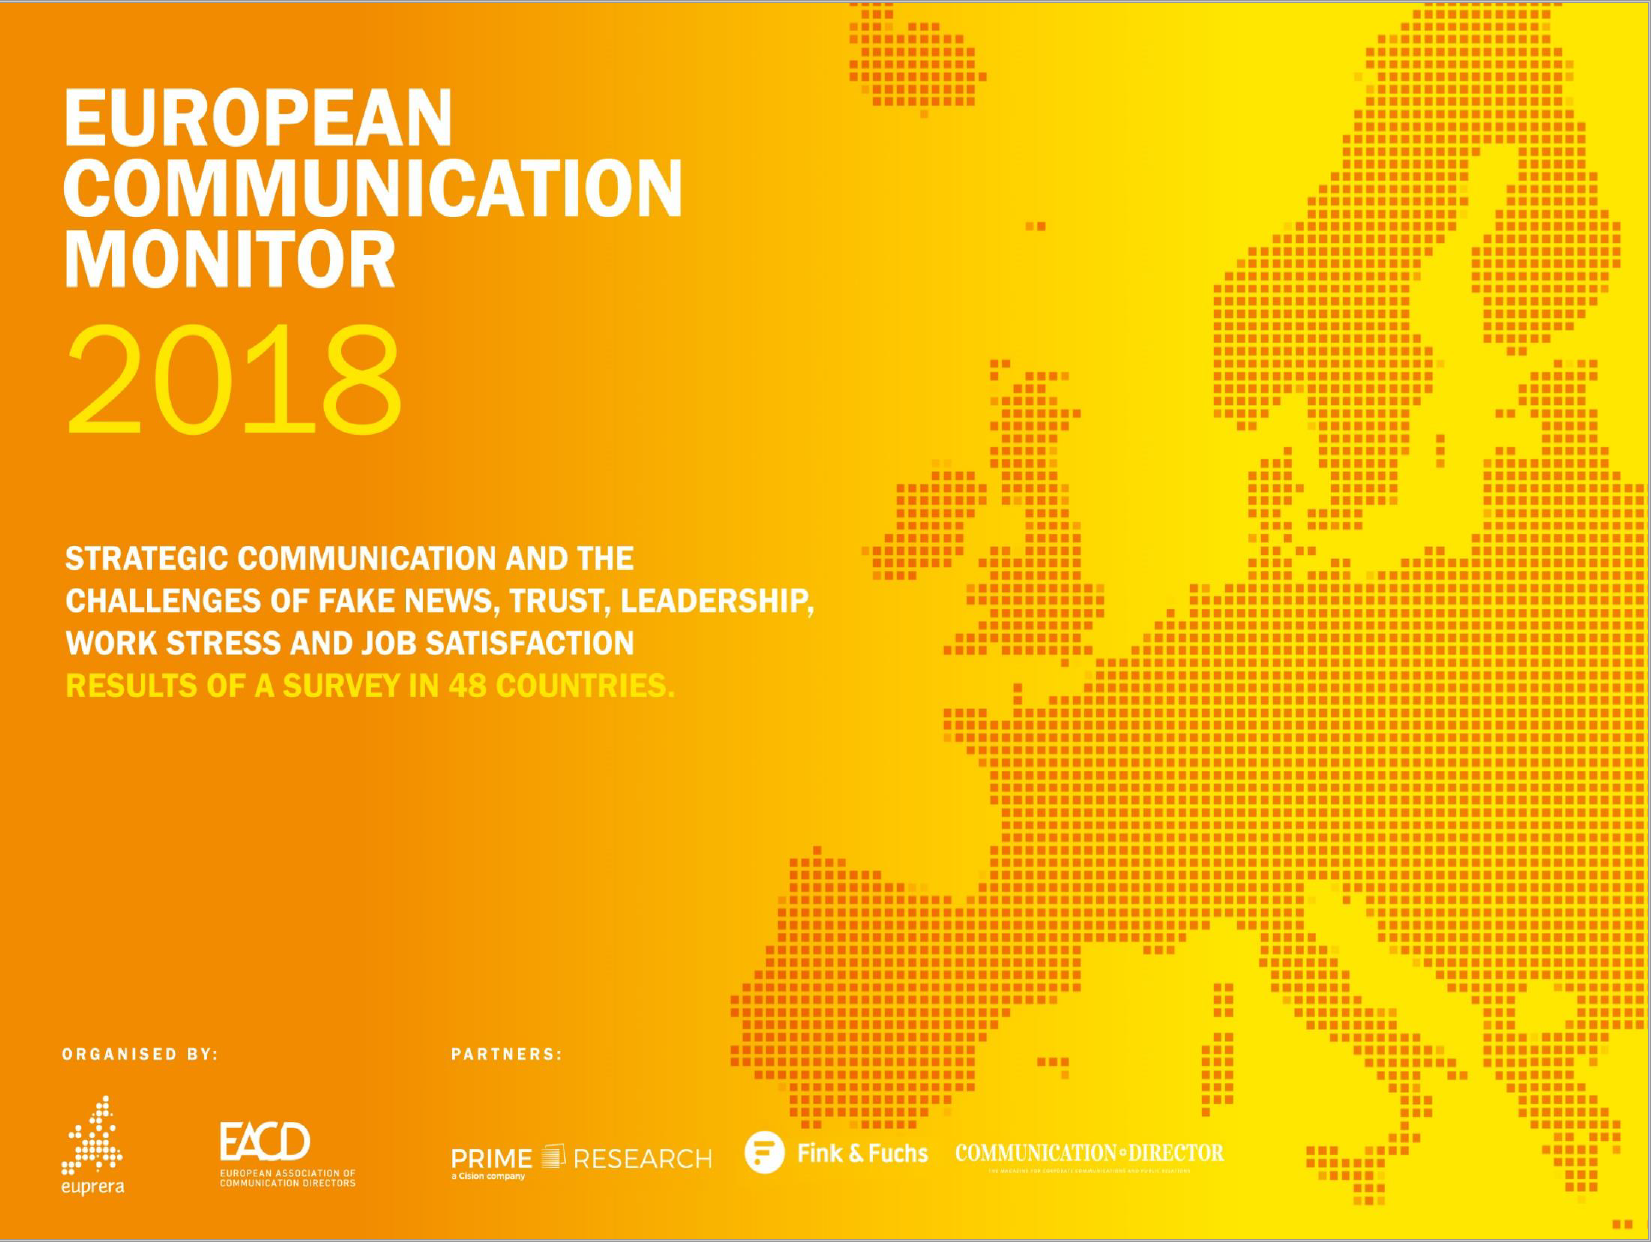 European Communication Monitor 2018 Header